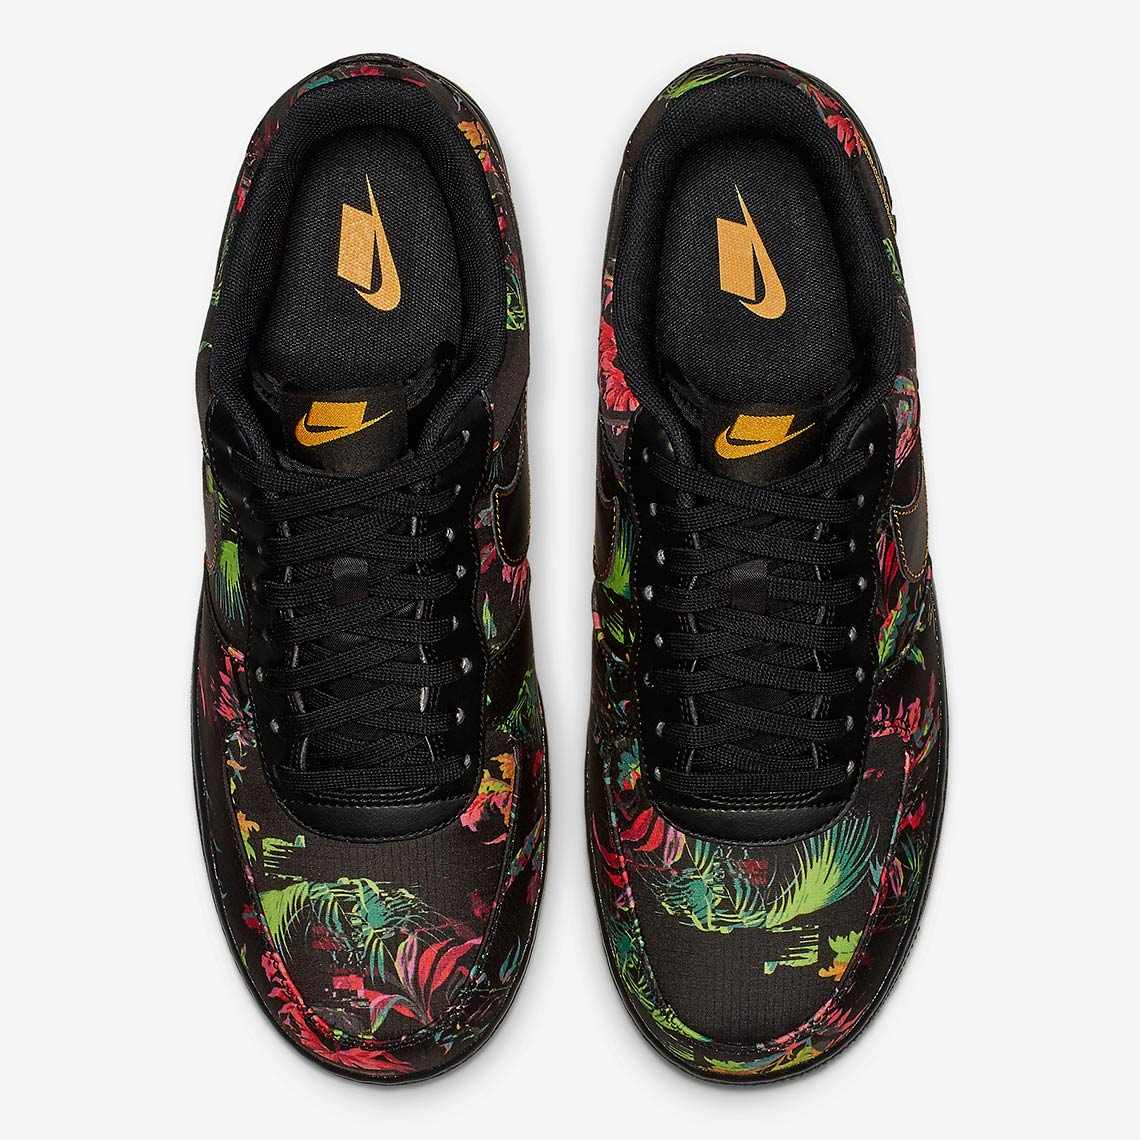 Nike Air Force 1 Low Floral BV6068 001 Release Info